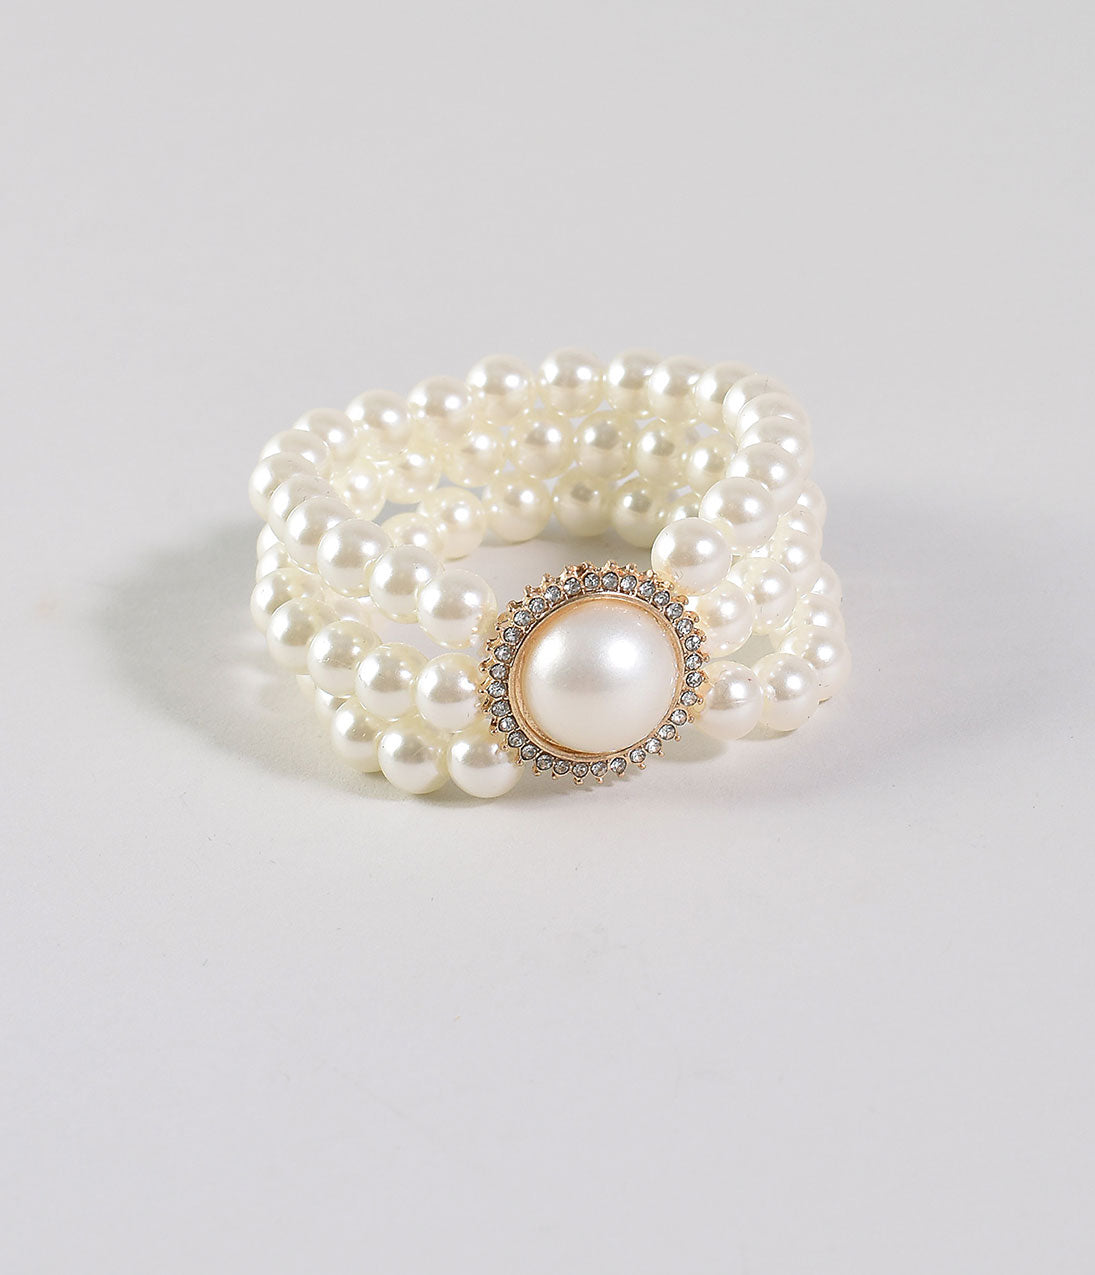 Vintage Style Jewelry, Retro Jewelry Ivory Pearl Three Strand Stretch Bracelet $24.00 AT vintagedancer.com